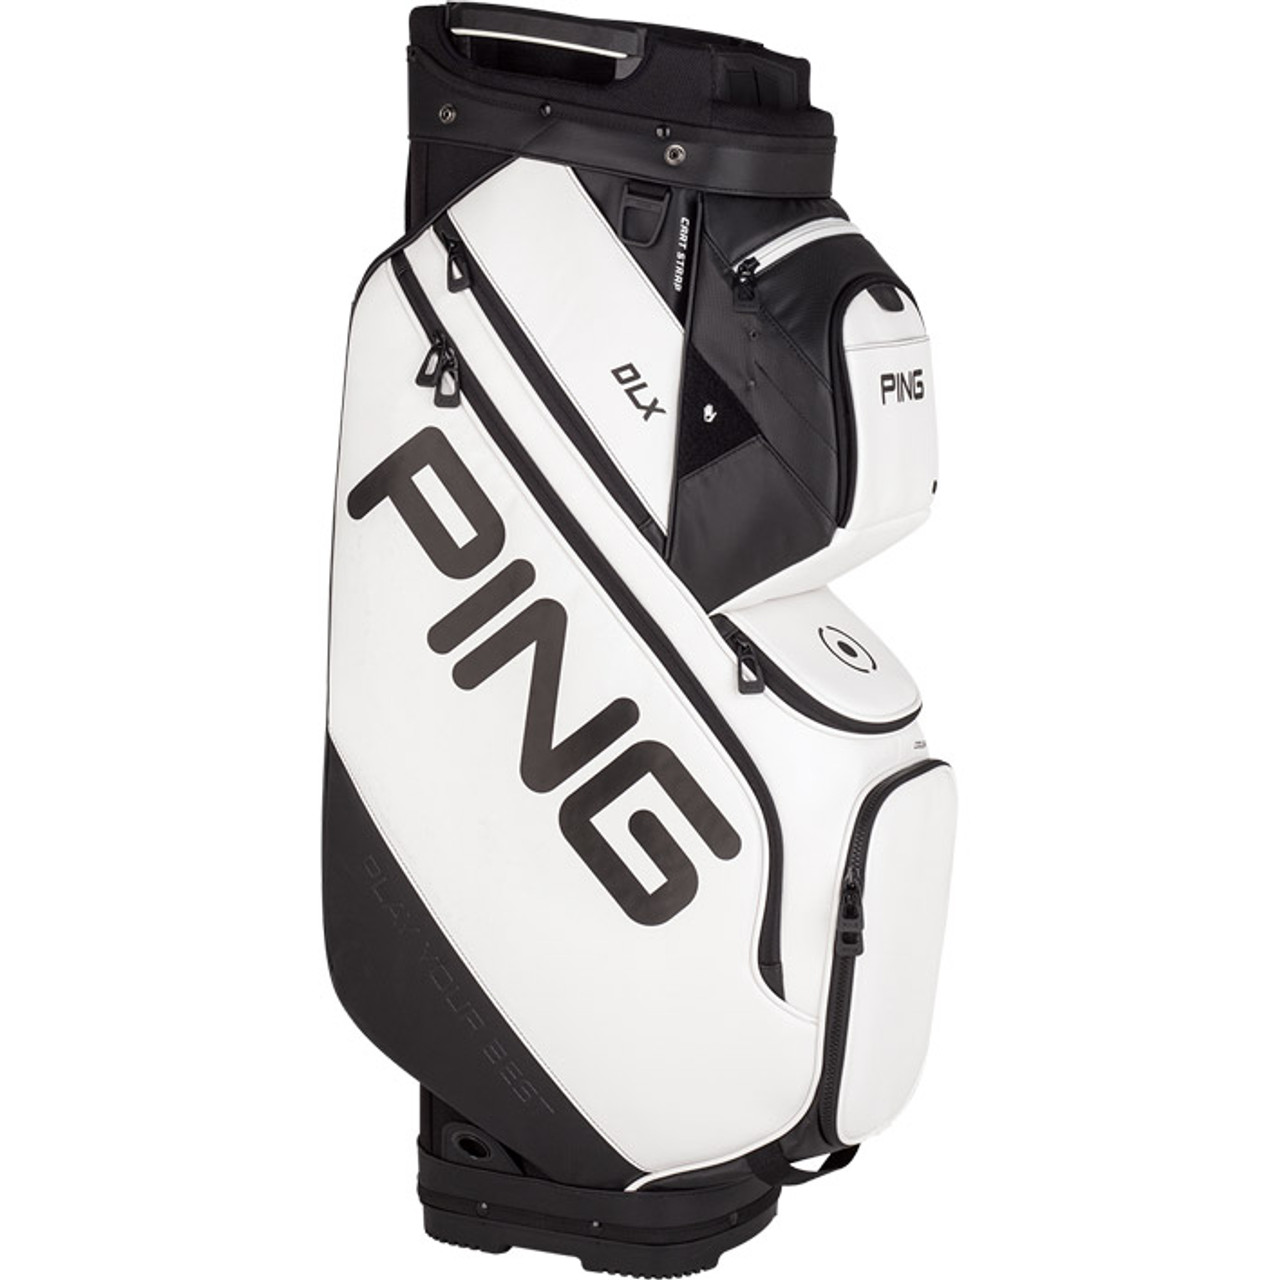 Ping DLX Personalized Cart Bags - White